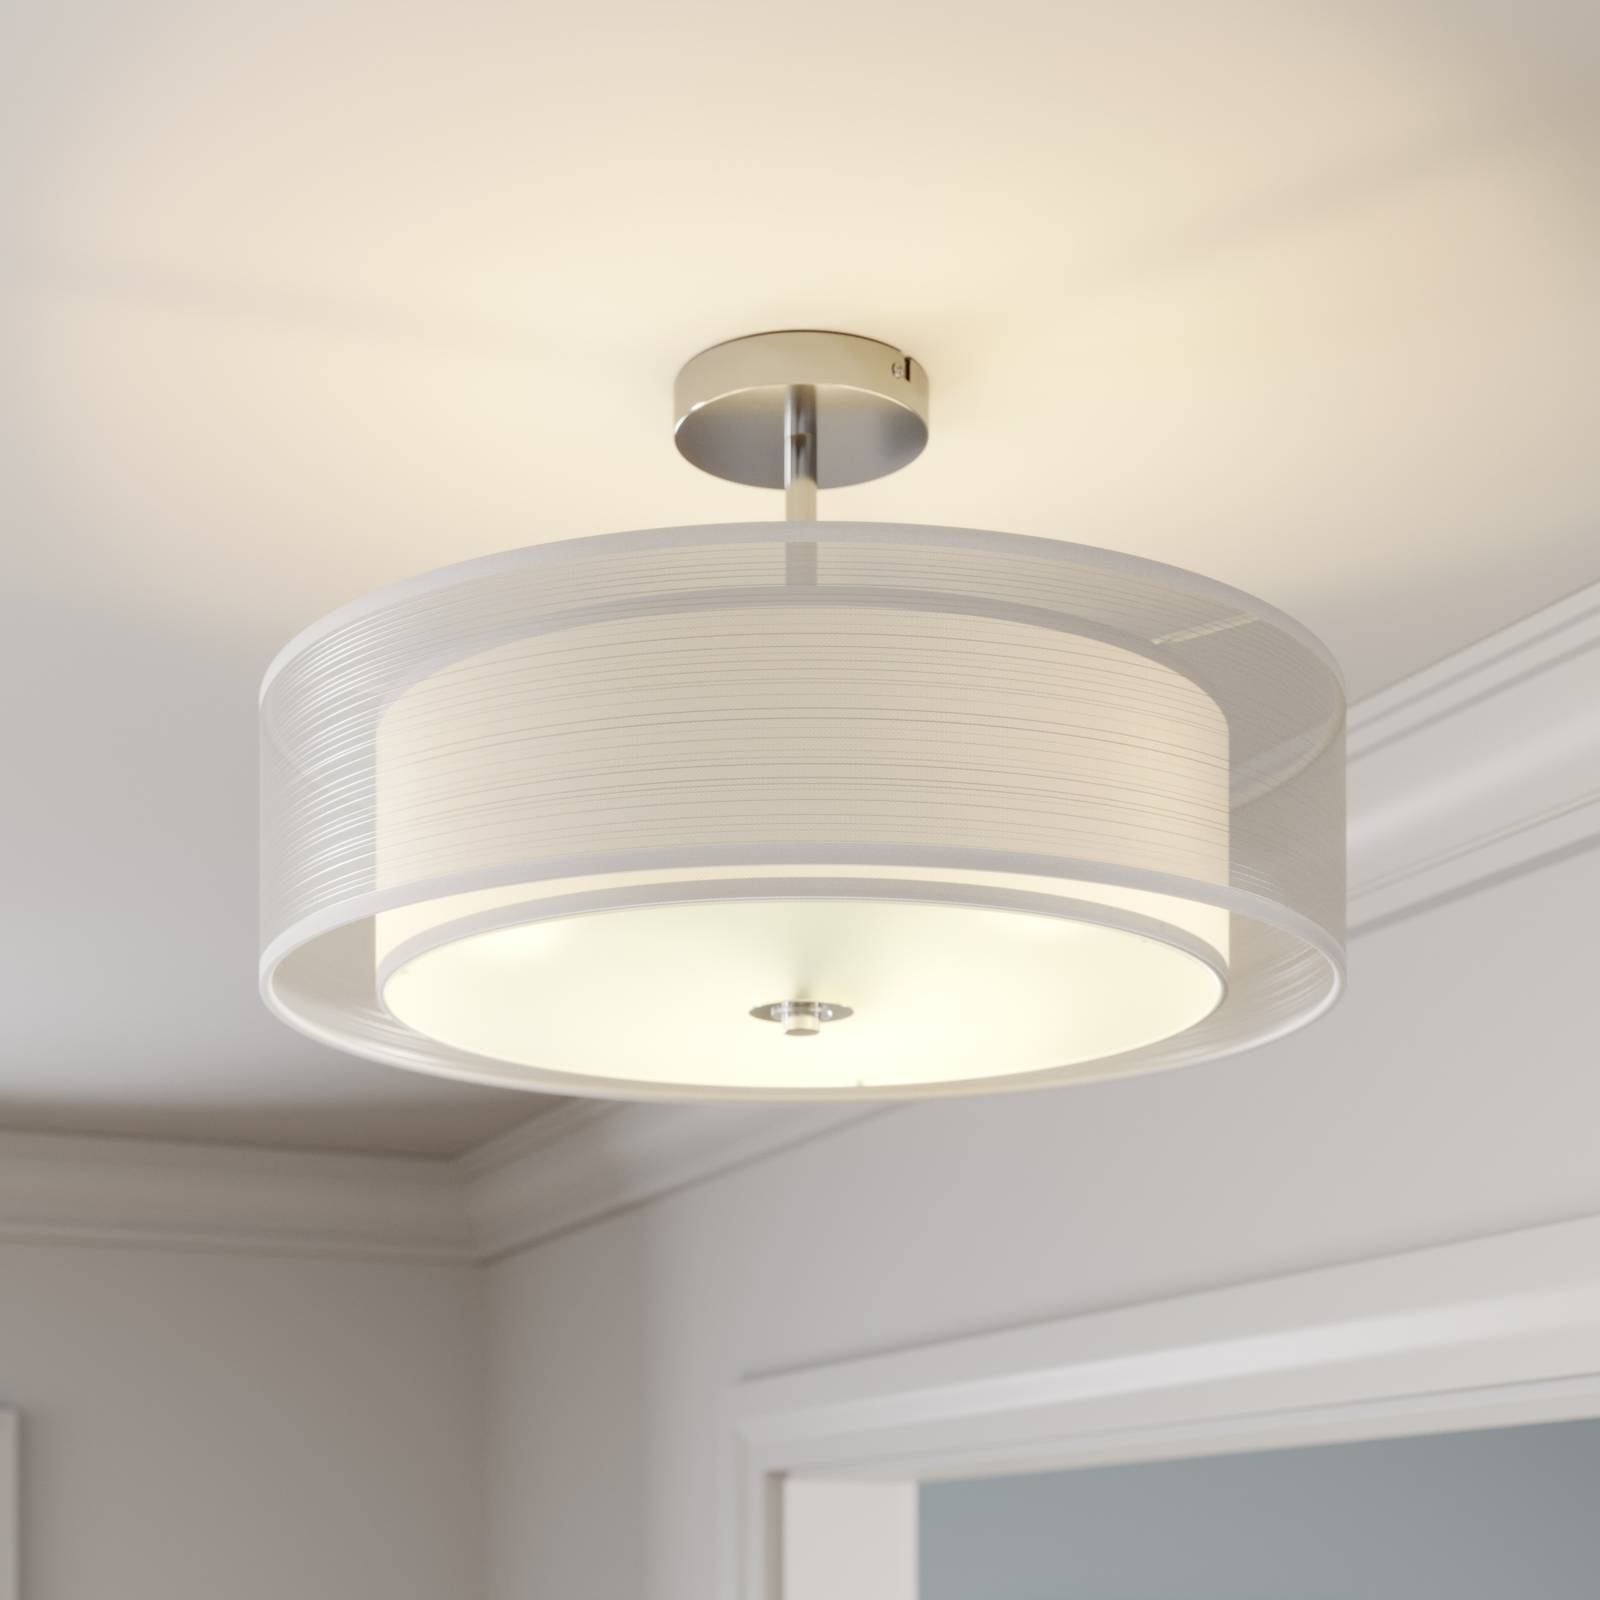 Pikka LED ceiling light with a white lampshade from Lindby